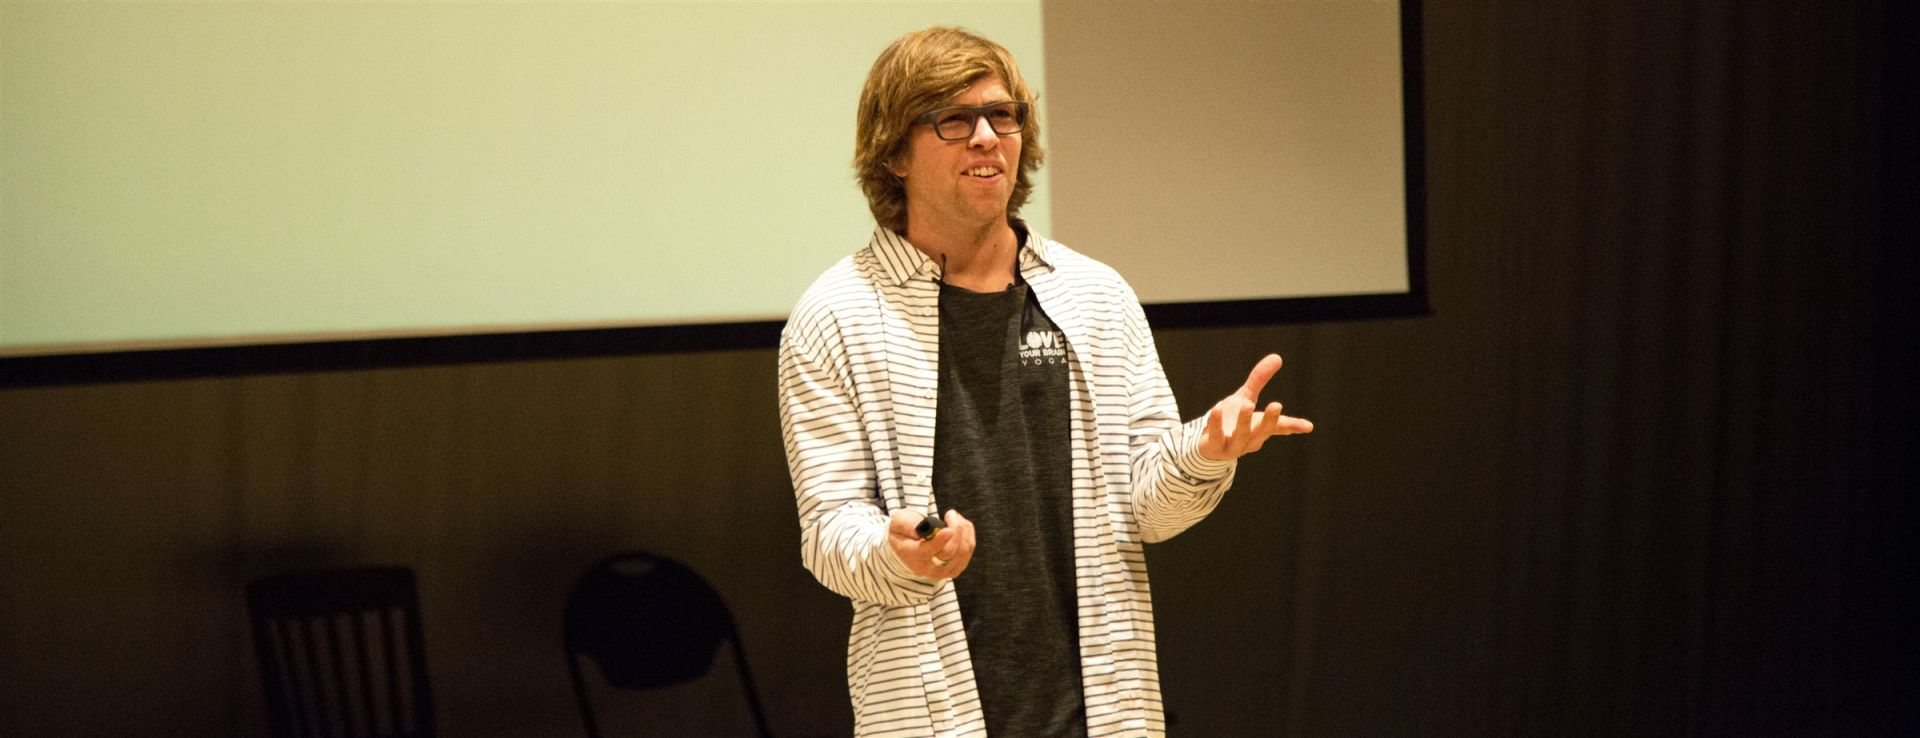 Kevin Pearce, a former professional snowboarder and traumatic brain injury survivor, addresses the Millbrook community in an all-school forum.